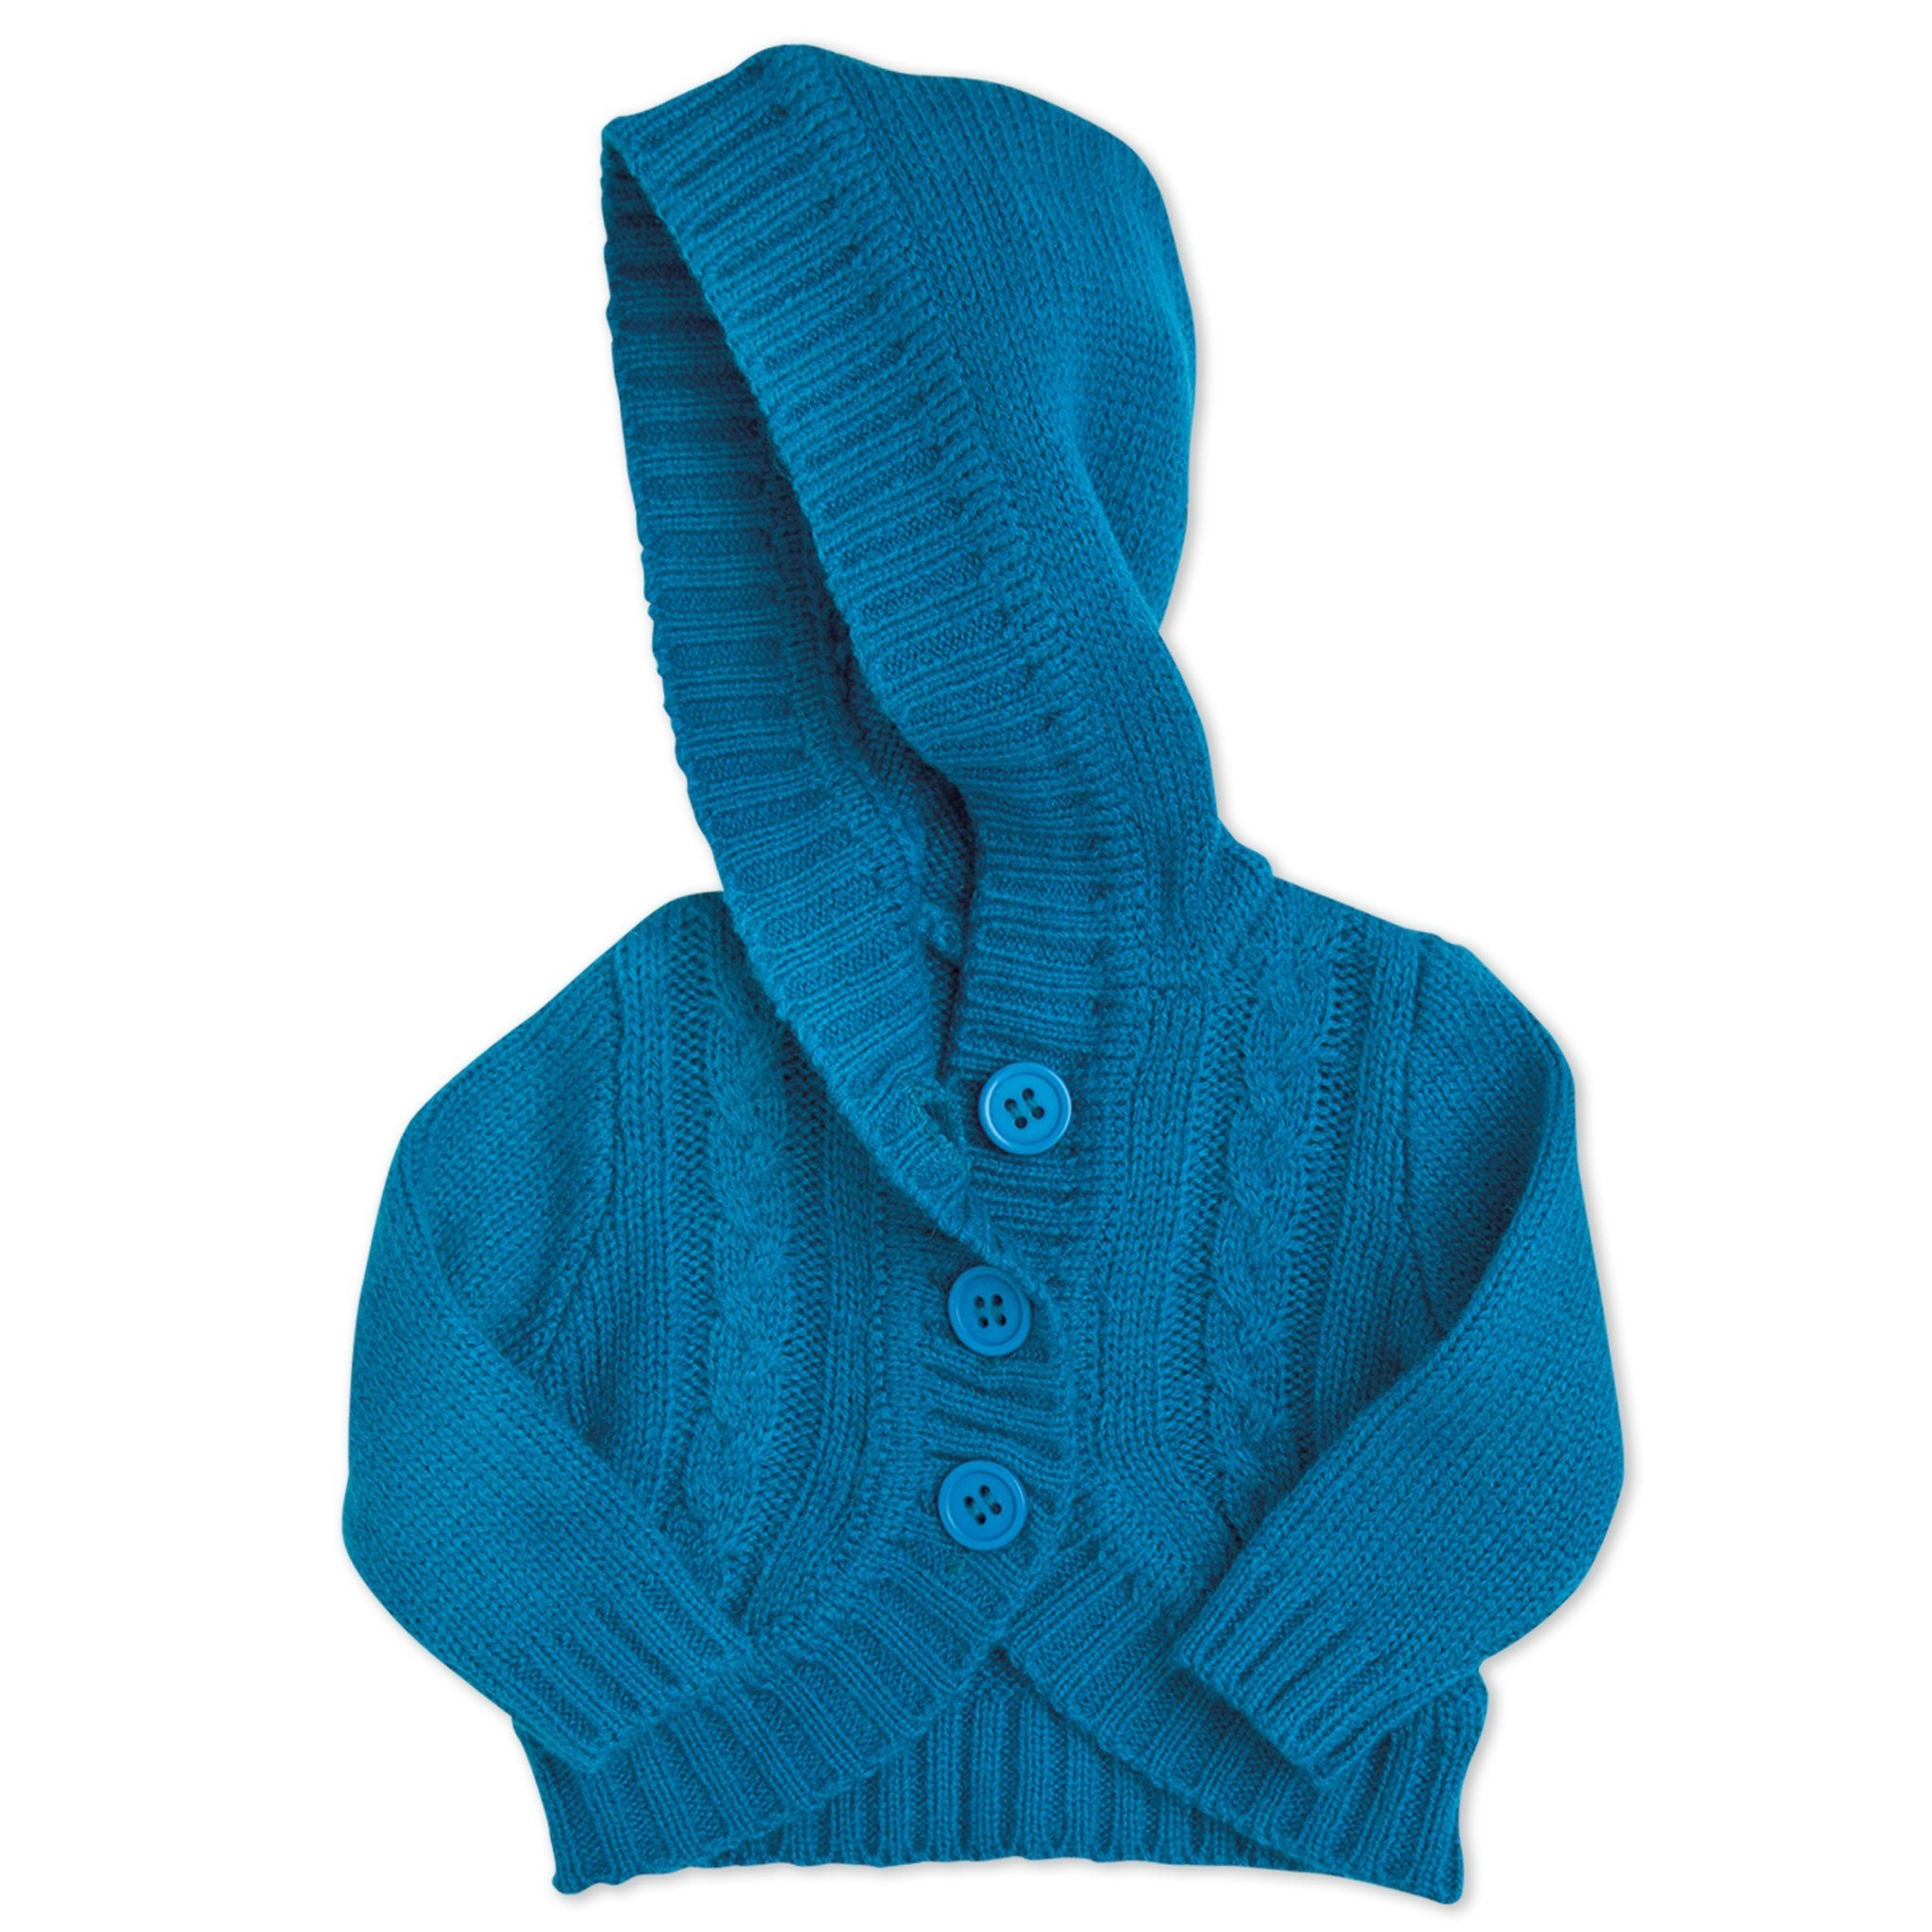 Nunavut Now blue hooded knit sweater with buttons fits all 18 inch dolls.